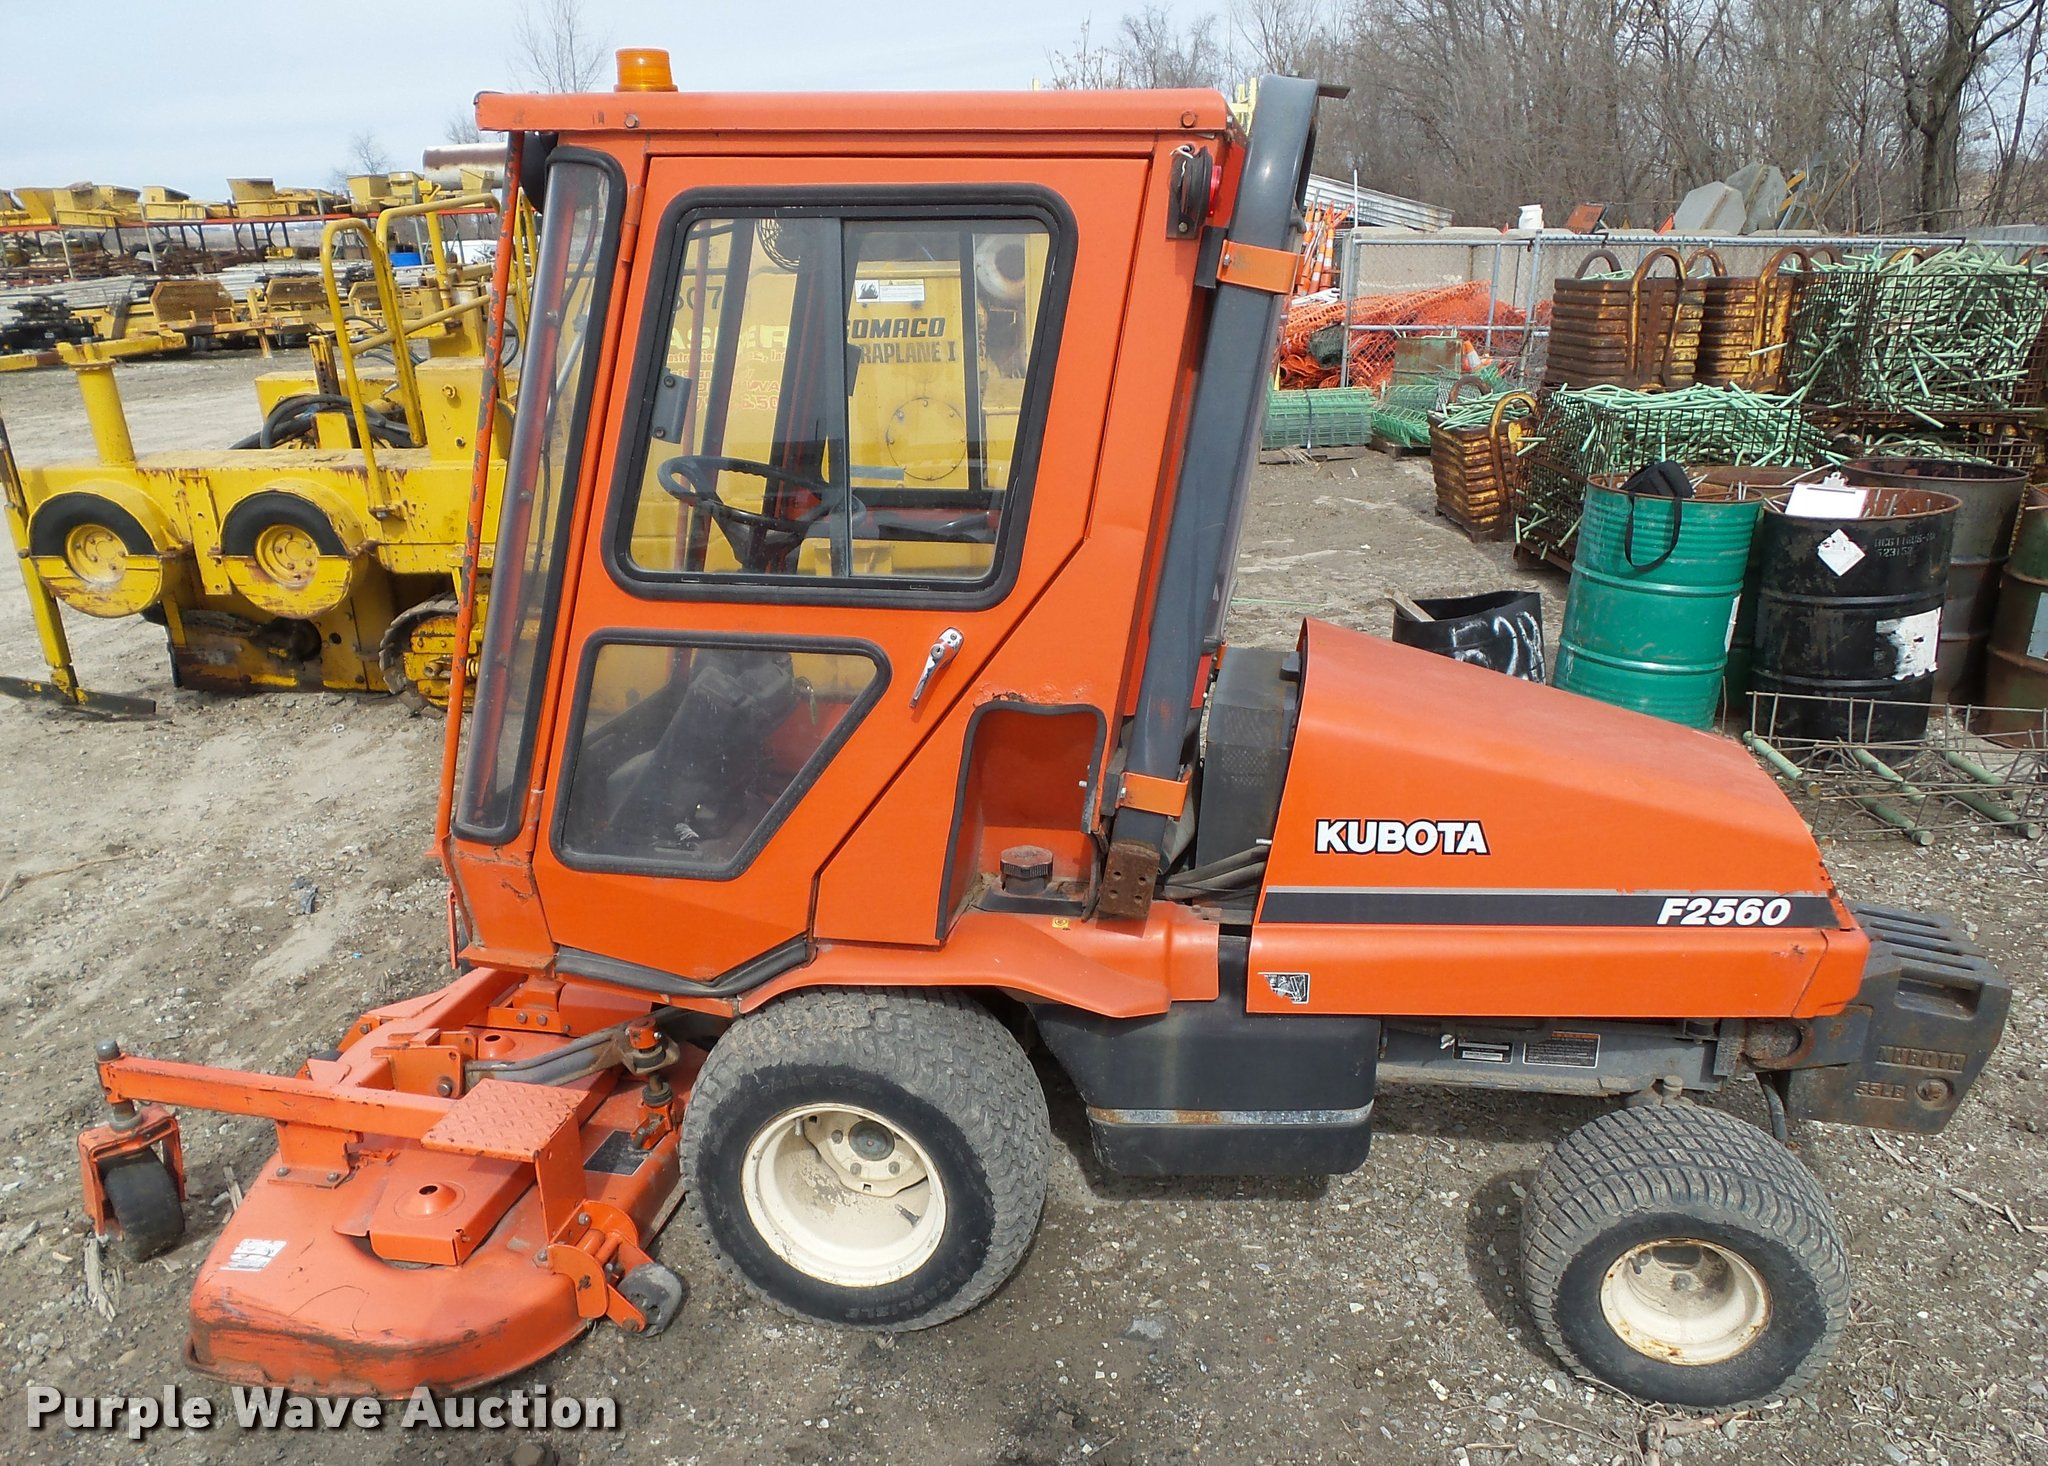 Kubota F2560 lawn mower and attachments   Item CB9865   SOLD